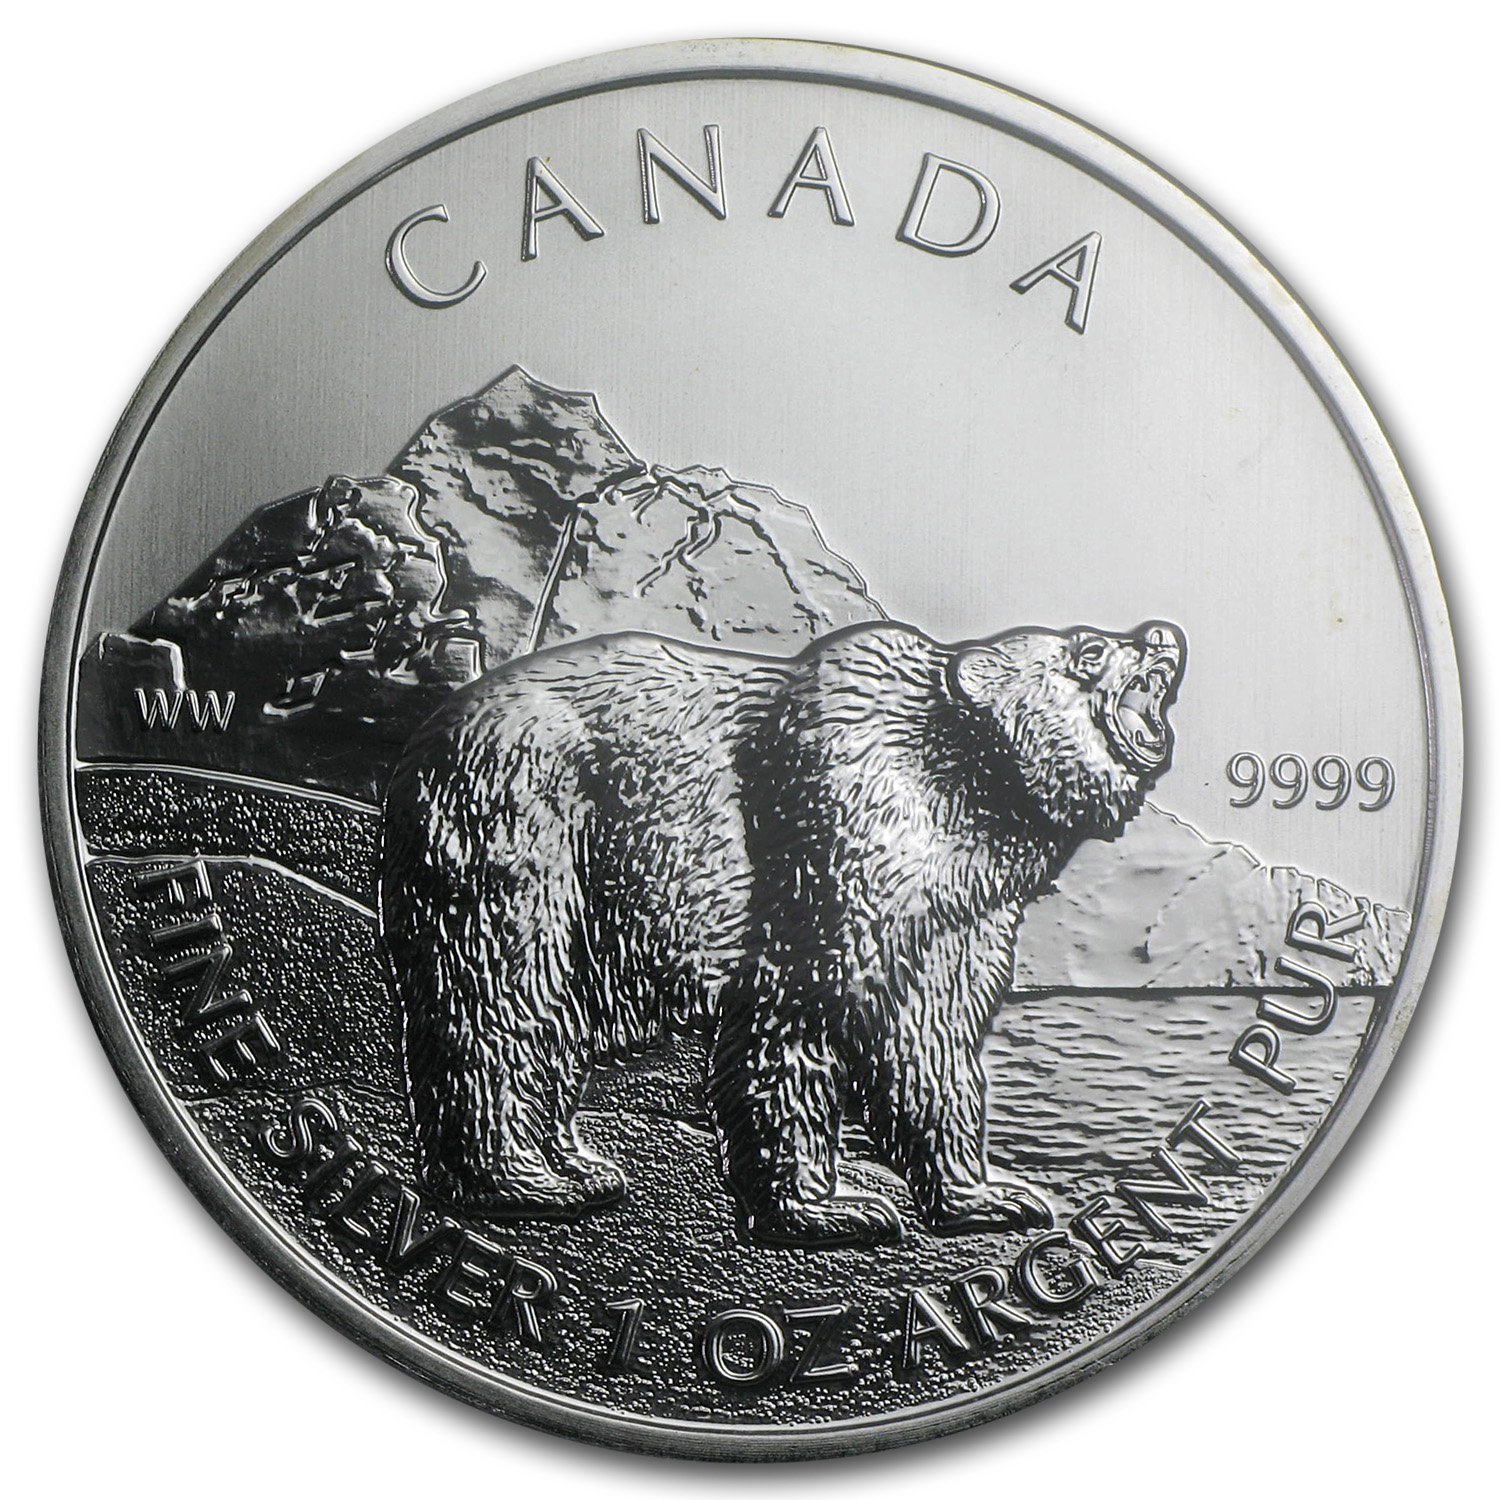 2011 Canada 1 oz Silver Wildlife Series Grizzly MS-68 PCGS